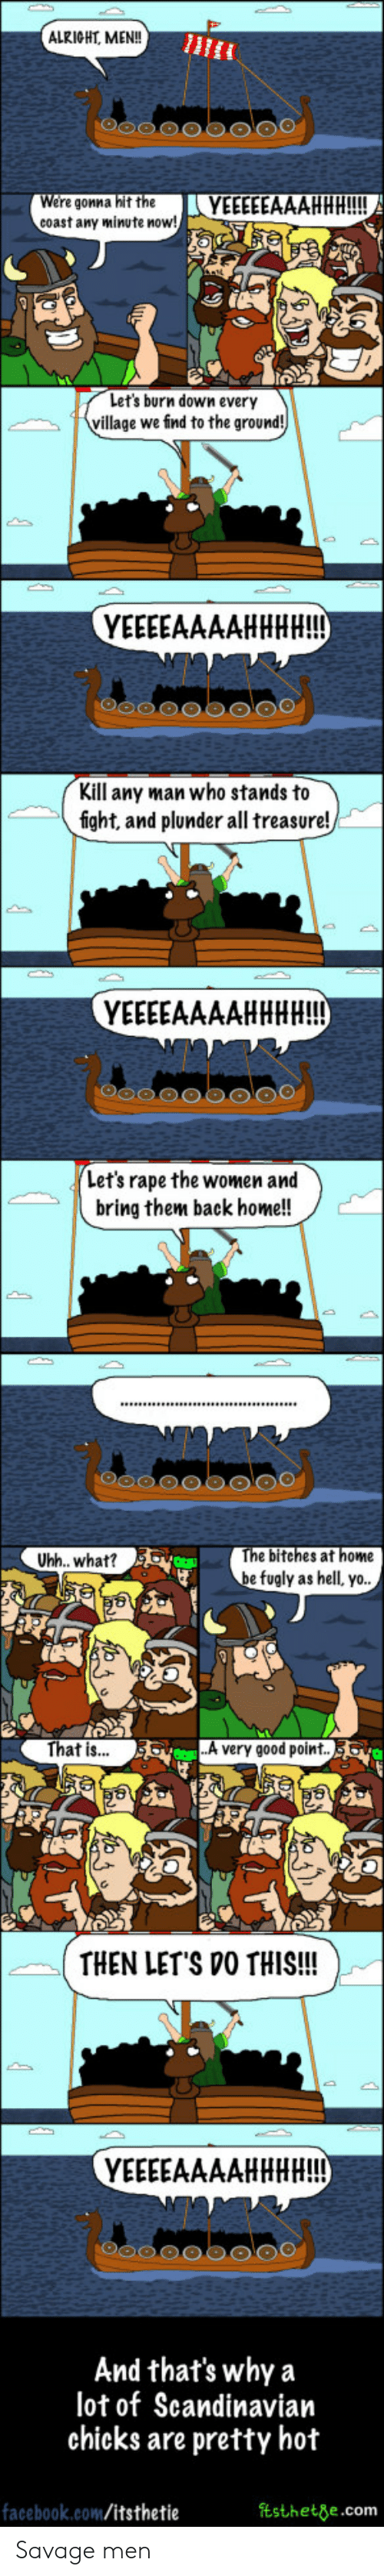 Home: ALRIGHT, MEN!!  re gonna hit the LYEEEEEAAAHHH!!!!  coast any minute now!  Let's burn down every  village we find to the ground!  Kill any man who stands to  fight, and plunder all treasure!  Let's rape the women and  bring them back home!!  e bitehes at home  be fugly as hell, yo  Uhh.. what?  That is...  A very good point  THEN LET'S VO THIS!!!  And that's why a  lot of Scandinavian  chicks are pretty hot  facebook.com/itsthetie  tsthete.com Savage men